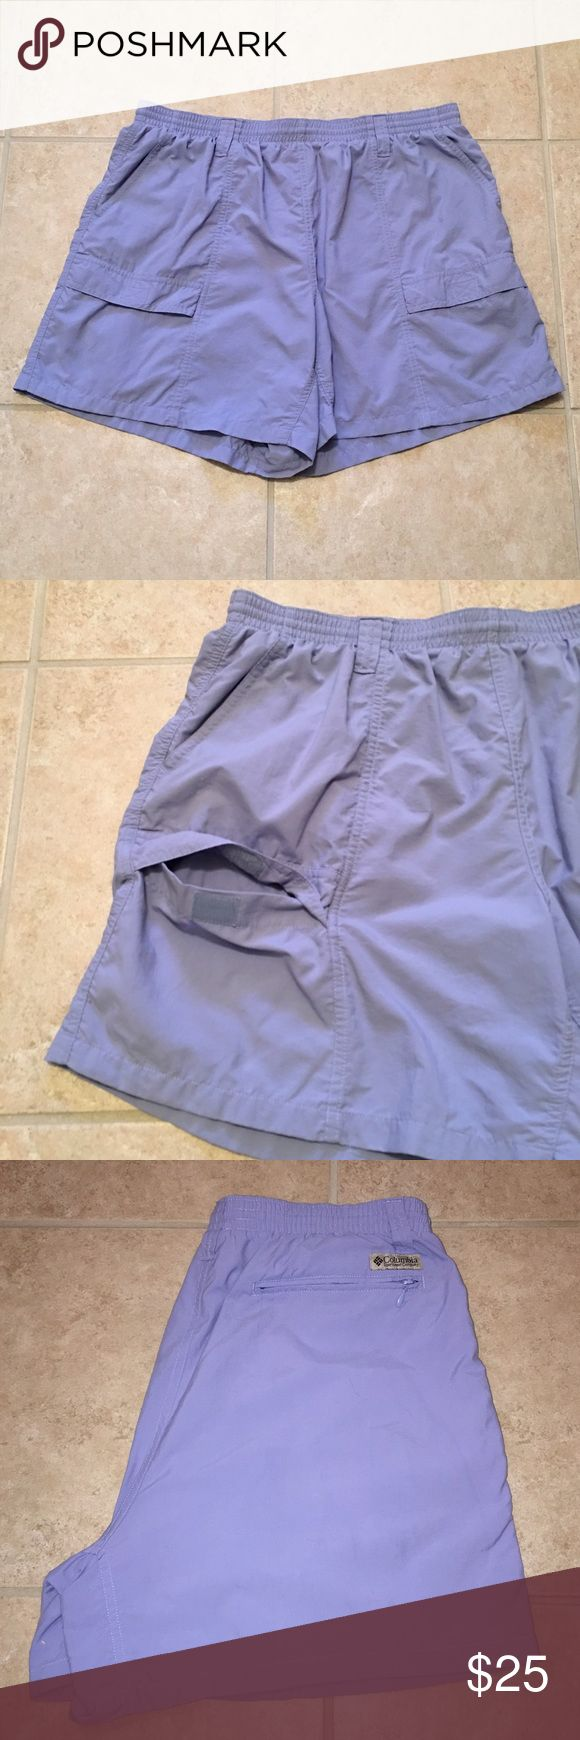 """🆕 💙BEAUTIFUL BLUE CARGO SHORTS💙. 💰LOWEST $💰 💙Beautiful, comfortable women's sports shorts! 💙NWOT  💙Adjustable waistband  💙Features the following: ☀️Two side pockets. ☀️Two front Velcro pockets. ☀️One posterior zippered pocket. ☀️Measurements are: * Length = 17"""" * Inseam = 5"""" 🔶ONLY reasonable offers will be considered🔶 ➡️USE THE REASONABLE OFFER CHART⬅️ ✳️Bundle option✳️ 🚫No low ball offers🚫 🚫No trades🚫 Columbia Shorts Cargos"""